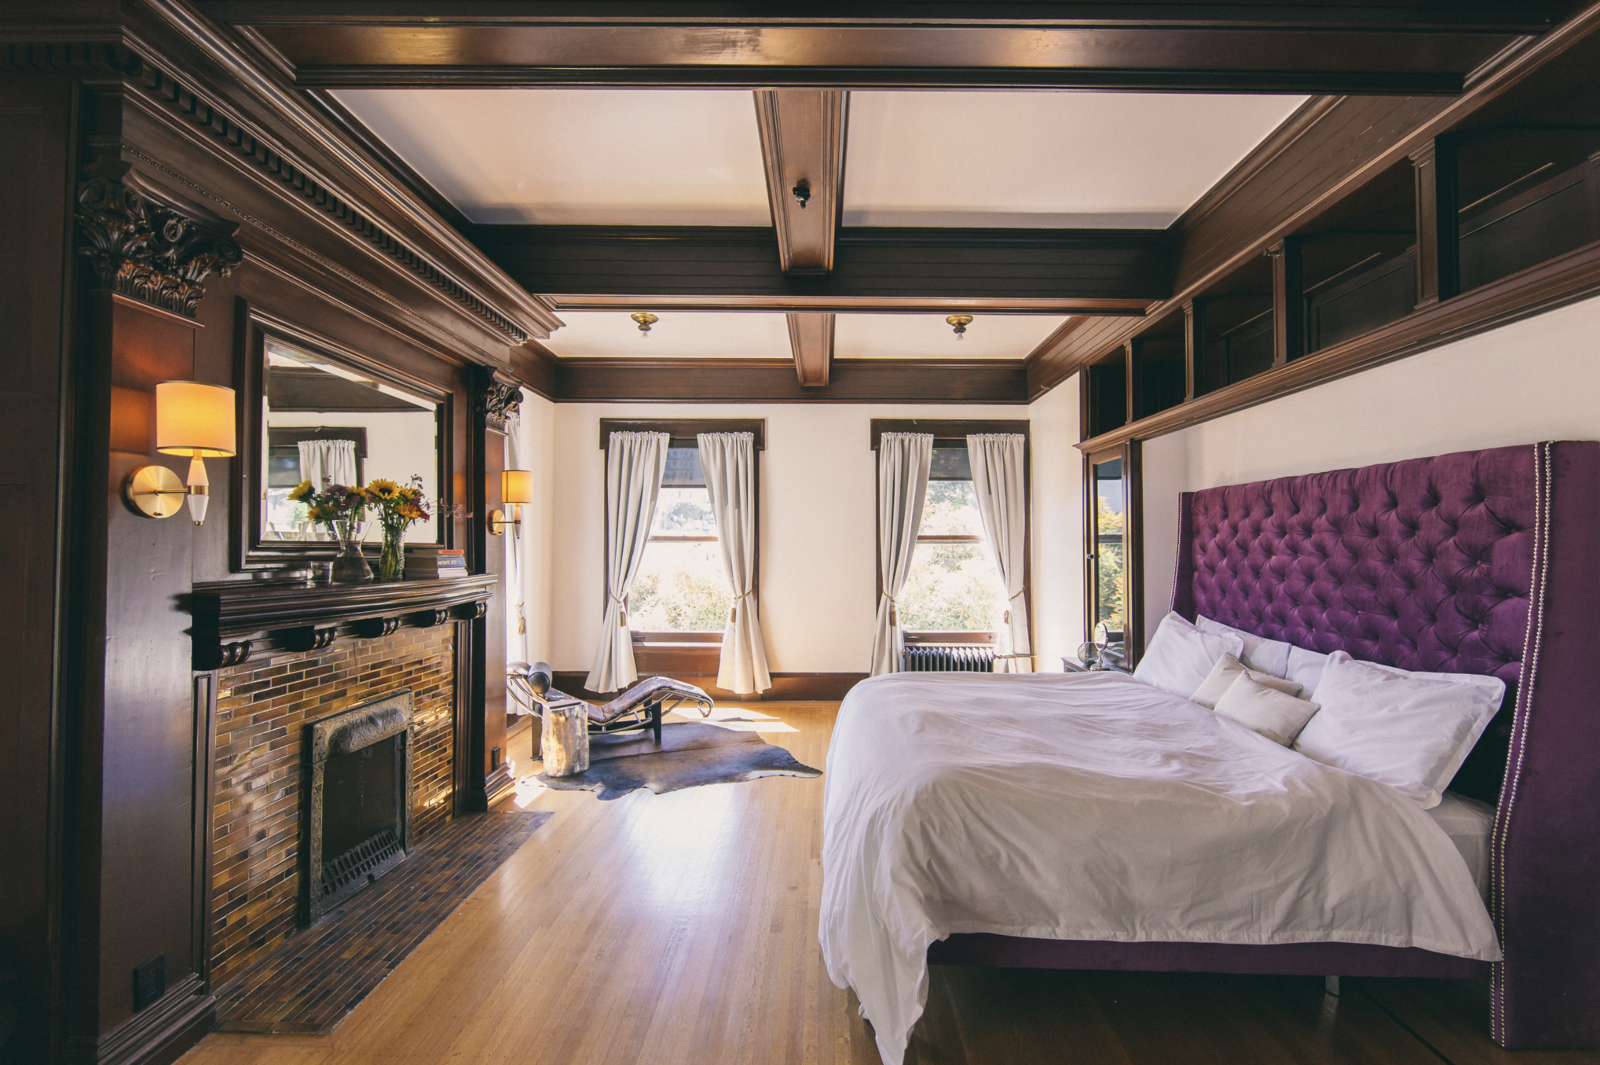 Bedroom, Bed, Ceiling Lighting, Wall Lighting, and Medium Hardwood Floor Renters can stay the night for $220 an evening or $4,000 a month.  Photo 11 of 12 in These 3 Co-Living Companies Are Transforming Urban Living